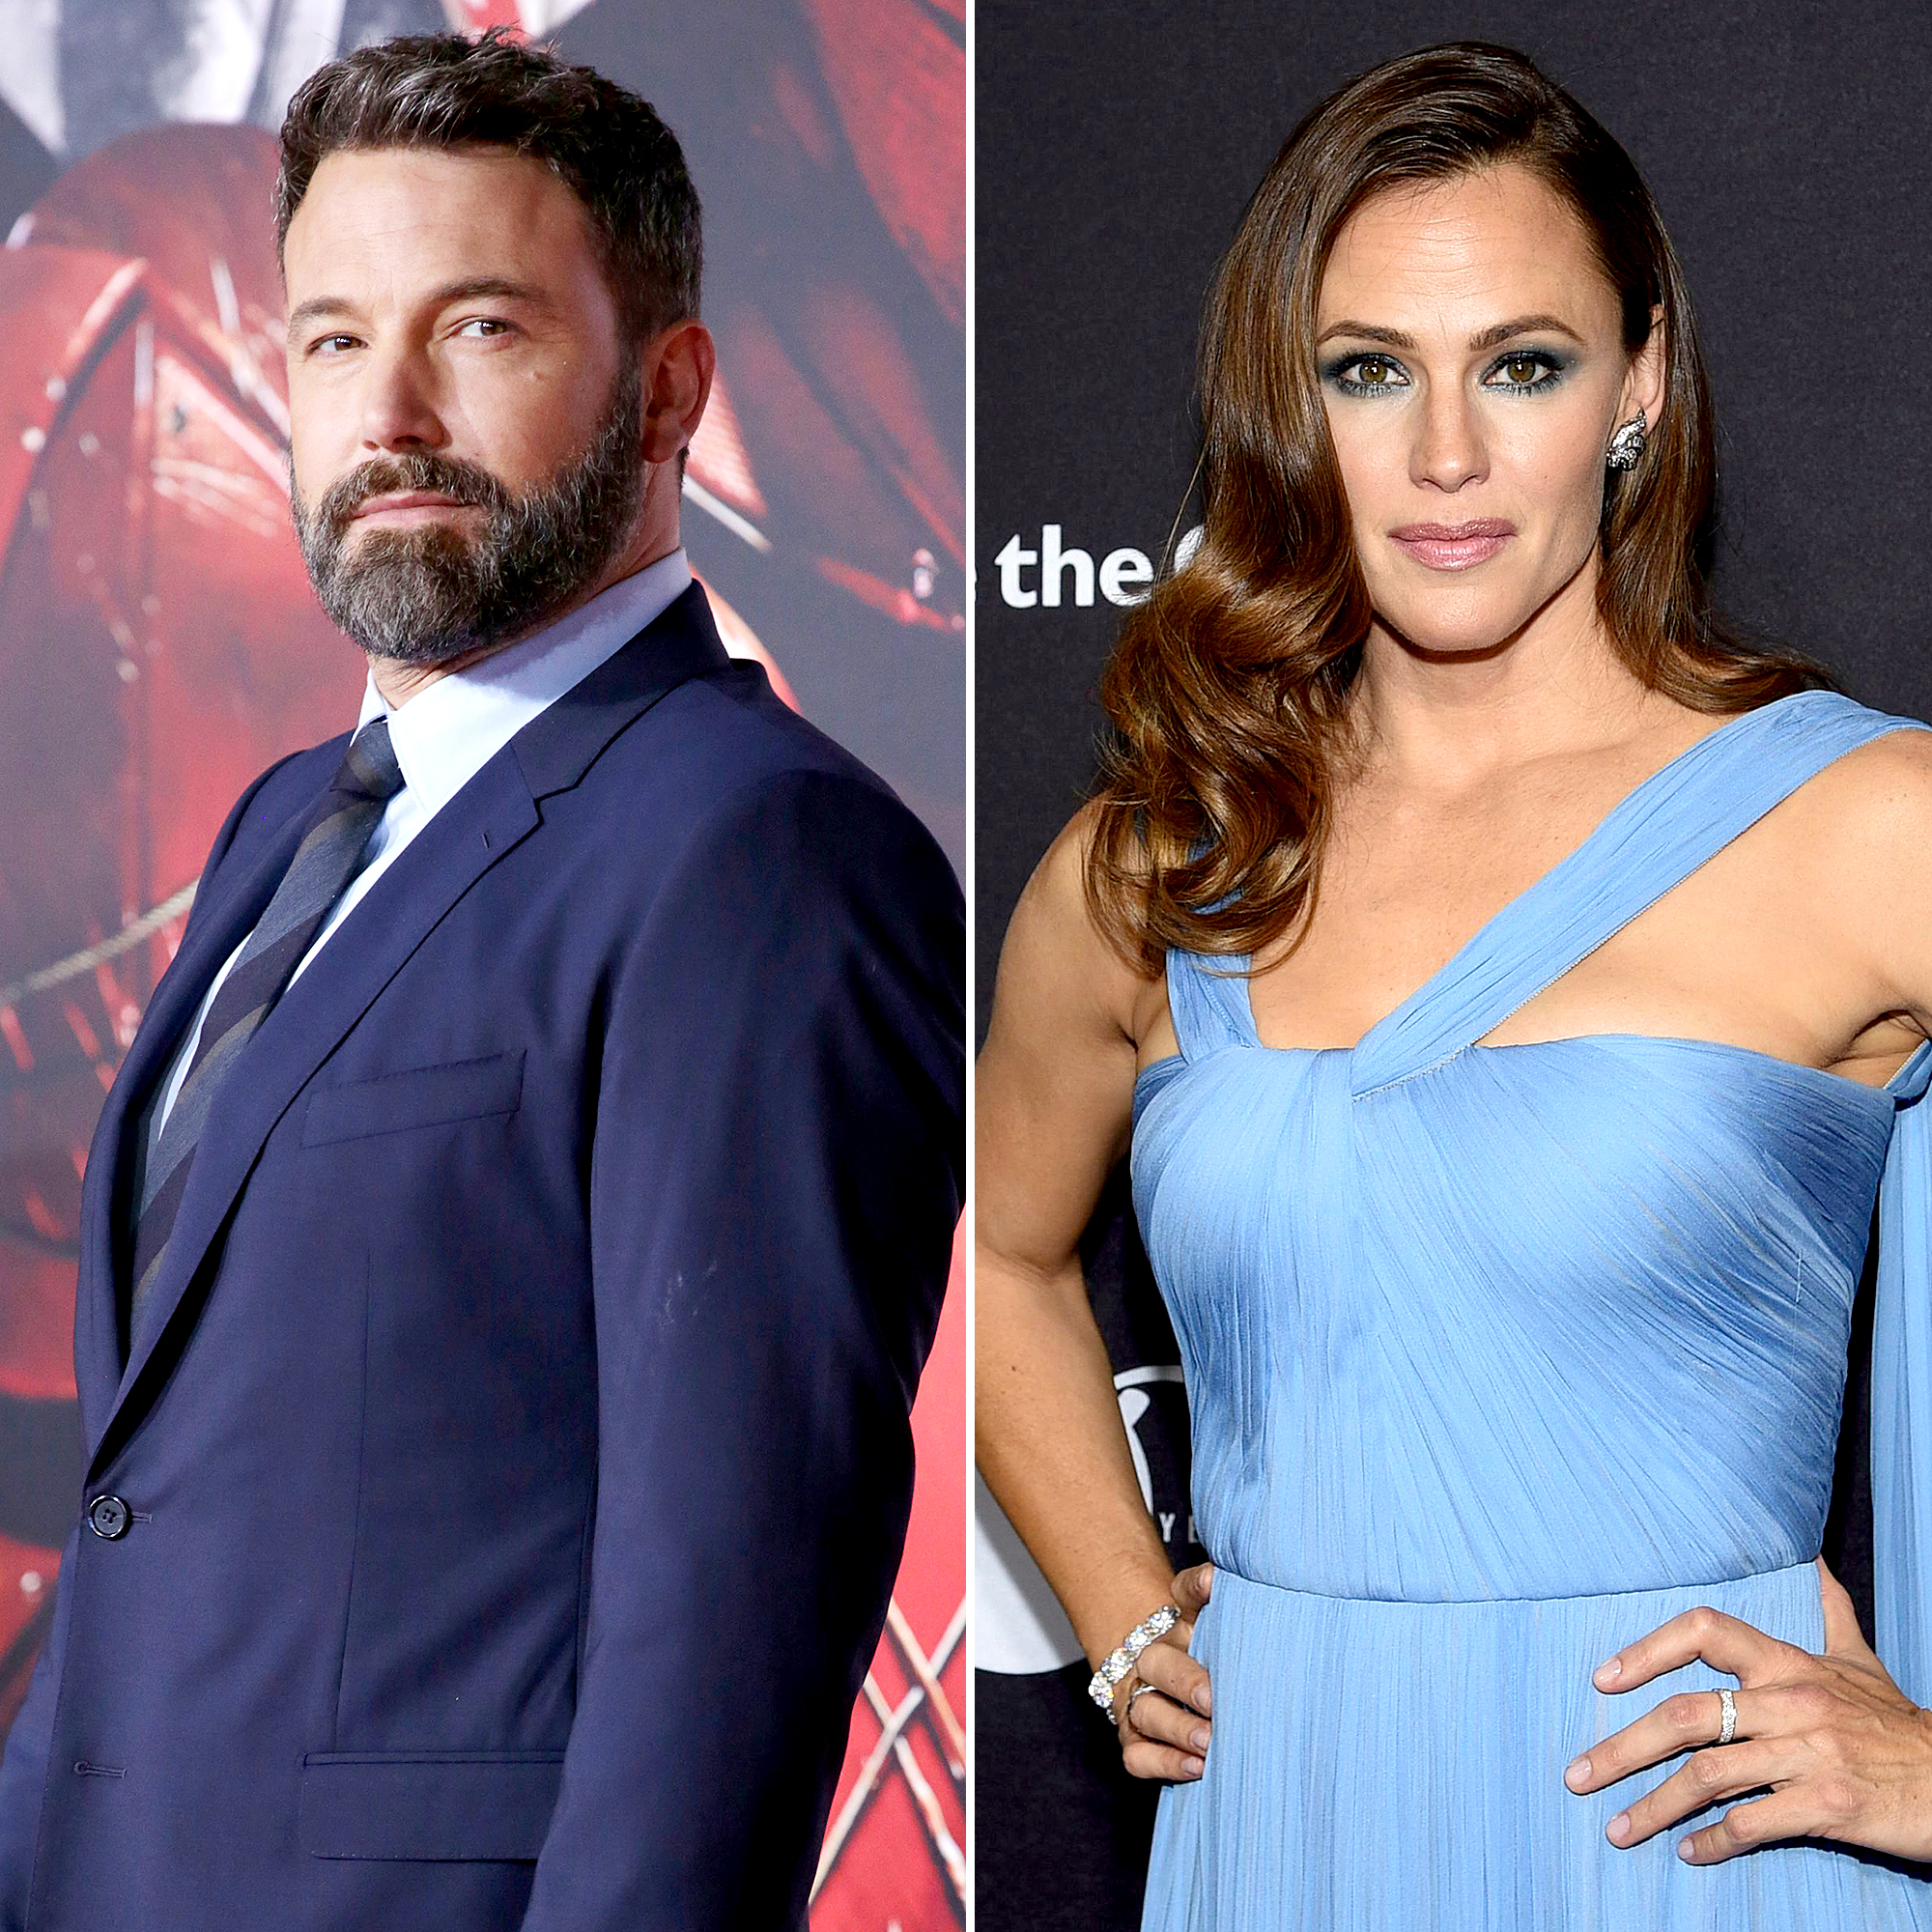 Ben-Affleck-Often-Feels-Like-He's-'Disappointing'-Jennifer-Garner